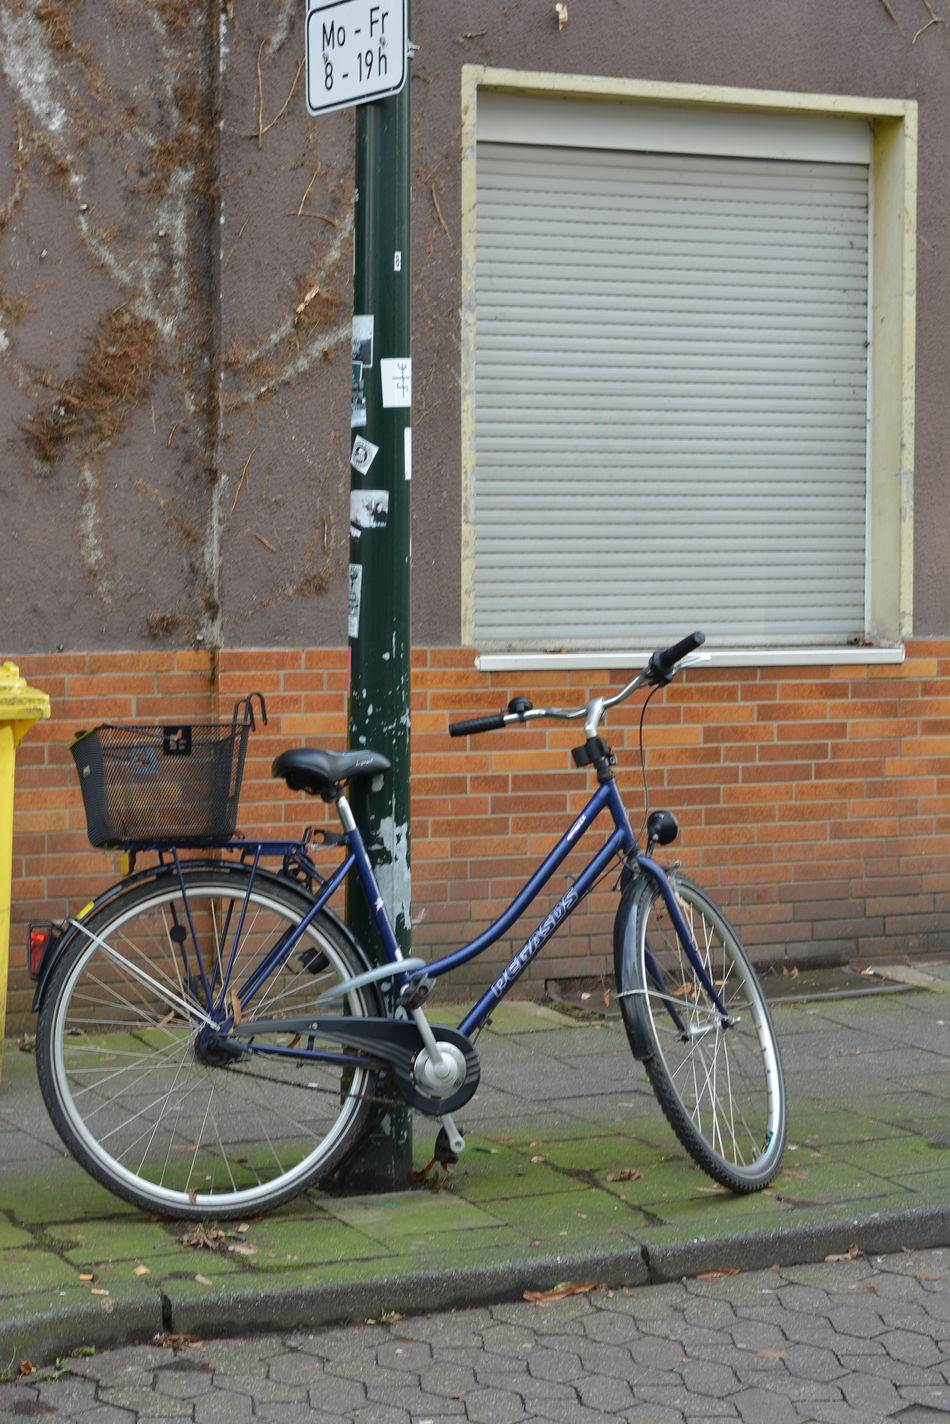 Architecture Bicycle Building Exterior Cycling Day Land Vehicle Mode Of Transport No People Outdoors Parking Stationary Tire Transportation Bicycle Basket Cycle Bike Urban Life Lamp Post Stilleben Window Shutter Emptiness Blue Bike Bike With Basket Abandoned